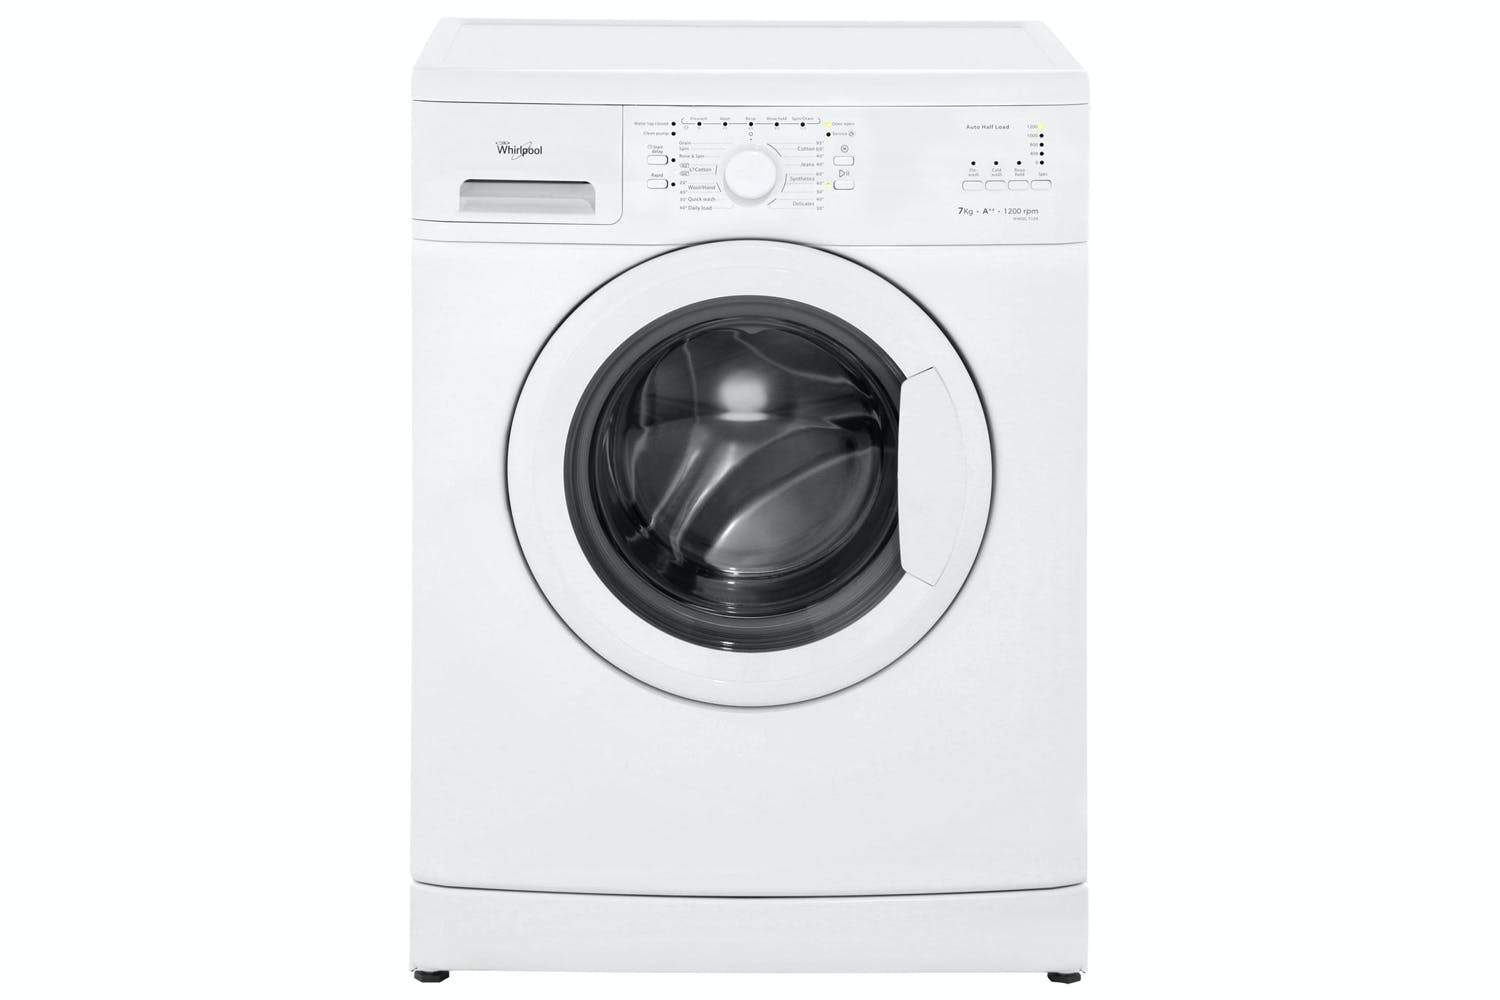 Whirlpool 7kg Washing Machine | WWDC7124